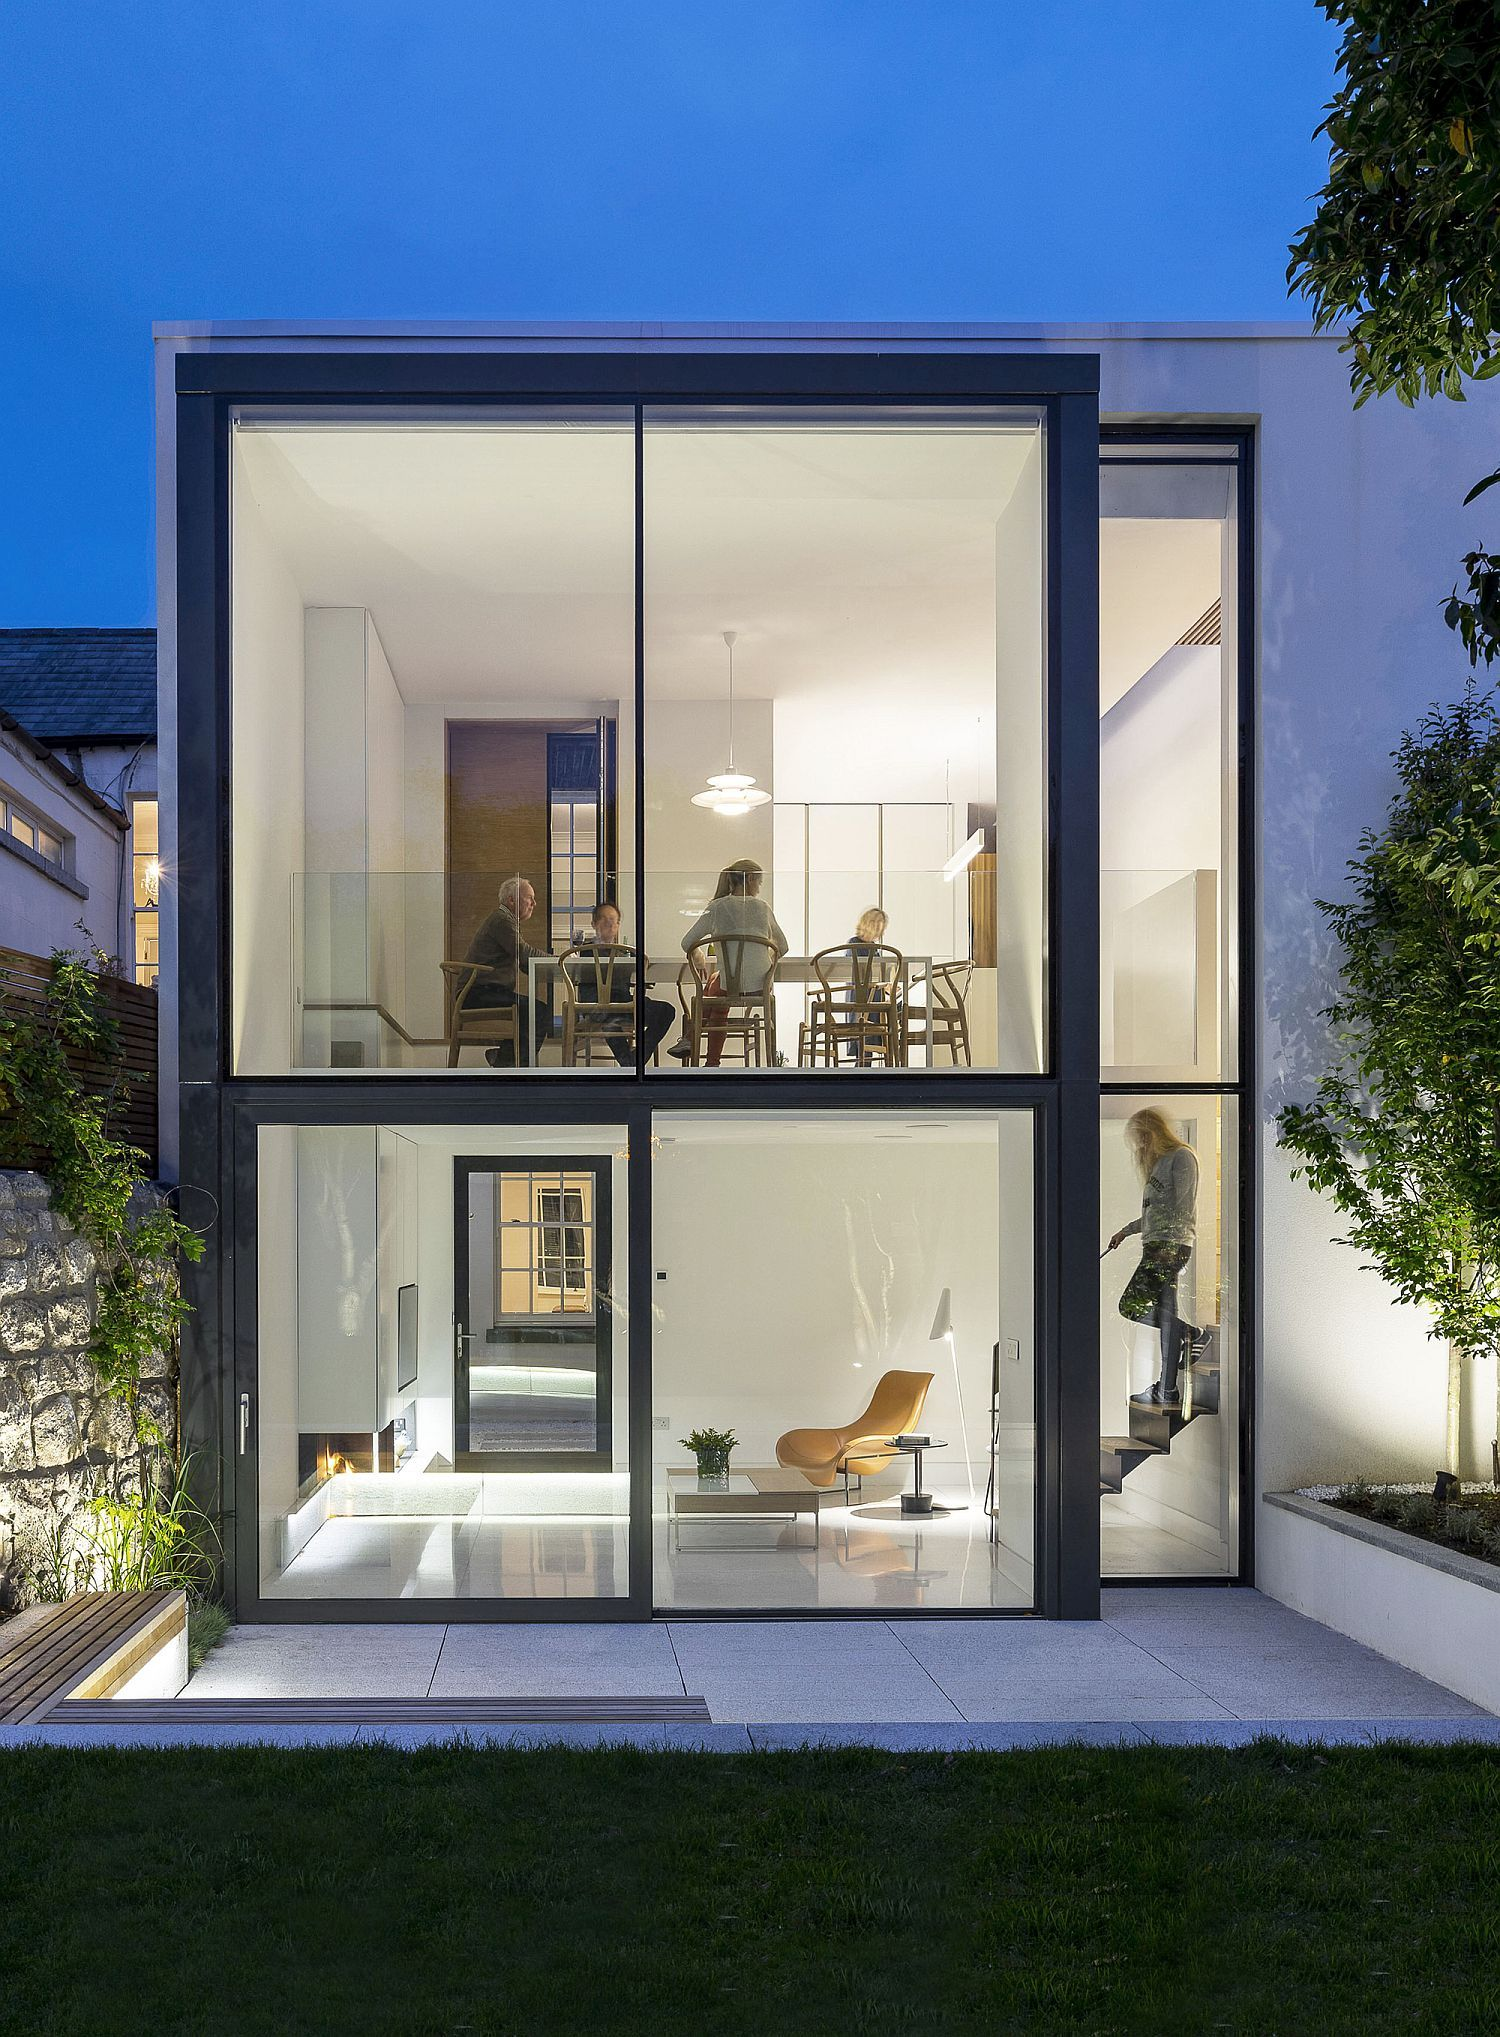 Modern extension to red brick Victorian terrace house in Dublin